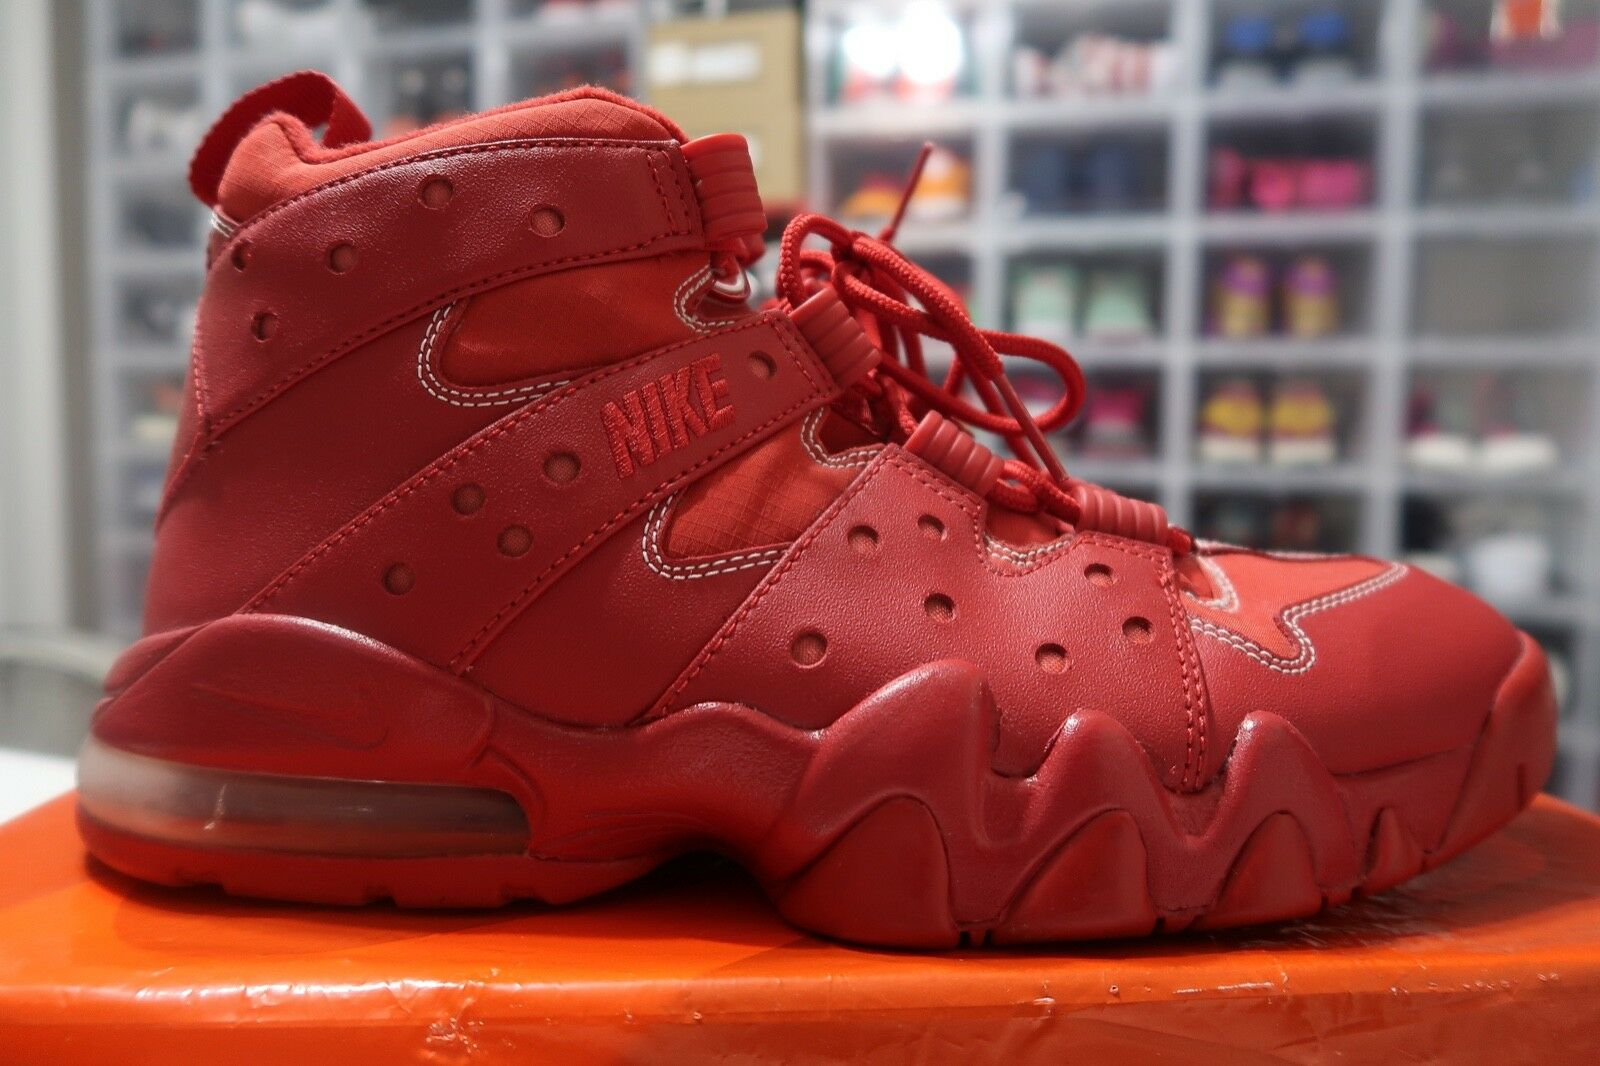 Nike Air Max Cb2 94 House of Hoops Exclusive  Ripstop  Sze 11 416189 661  RARE